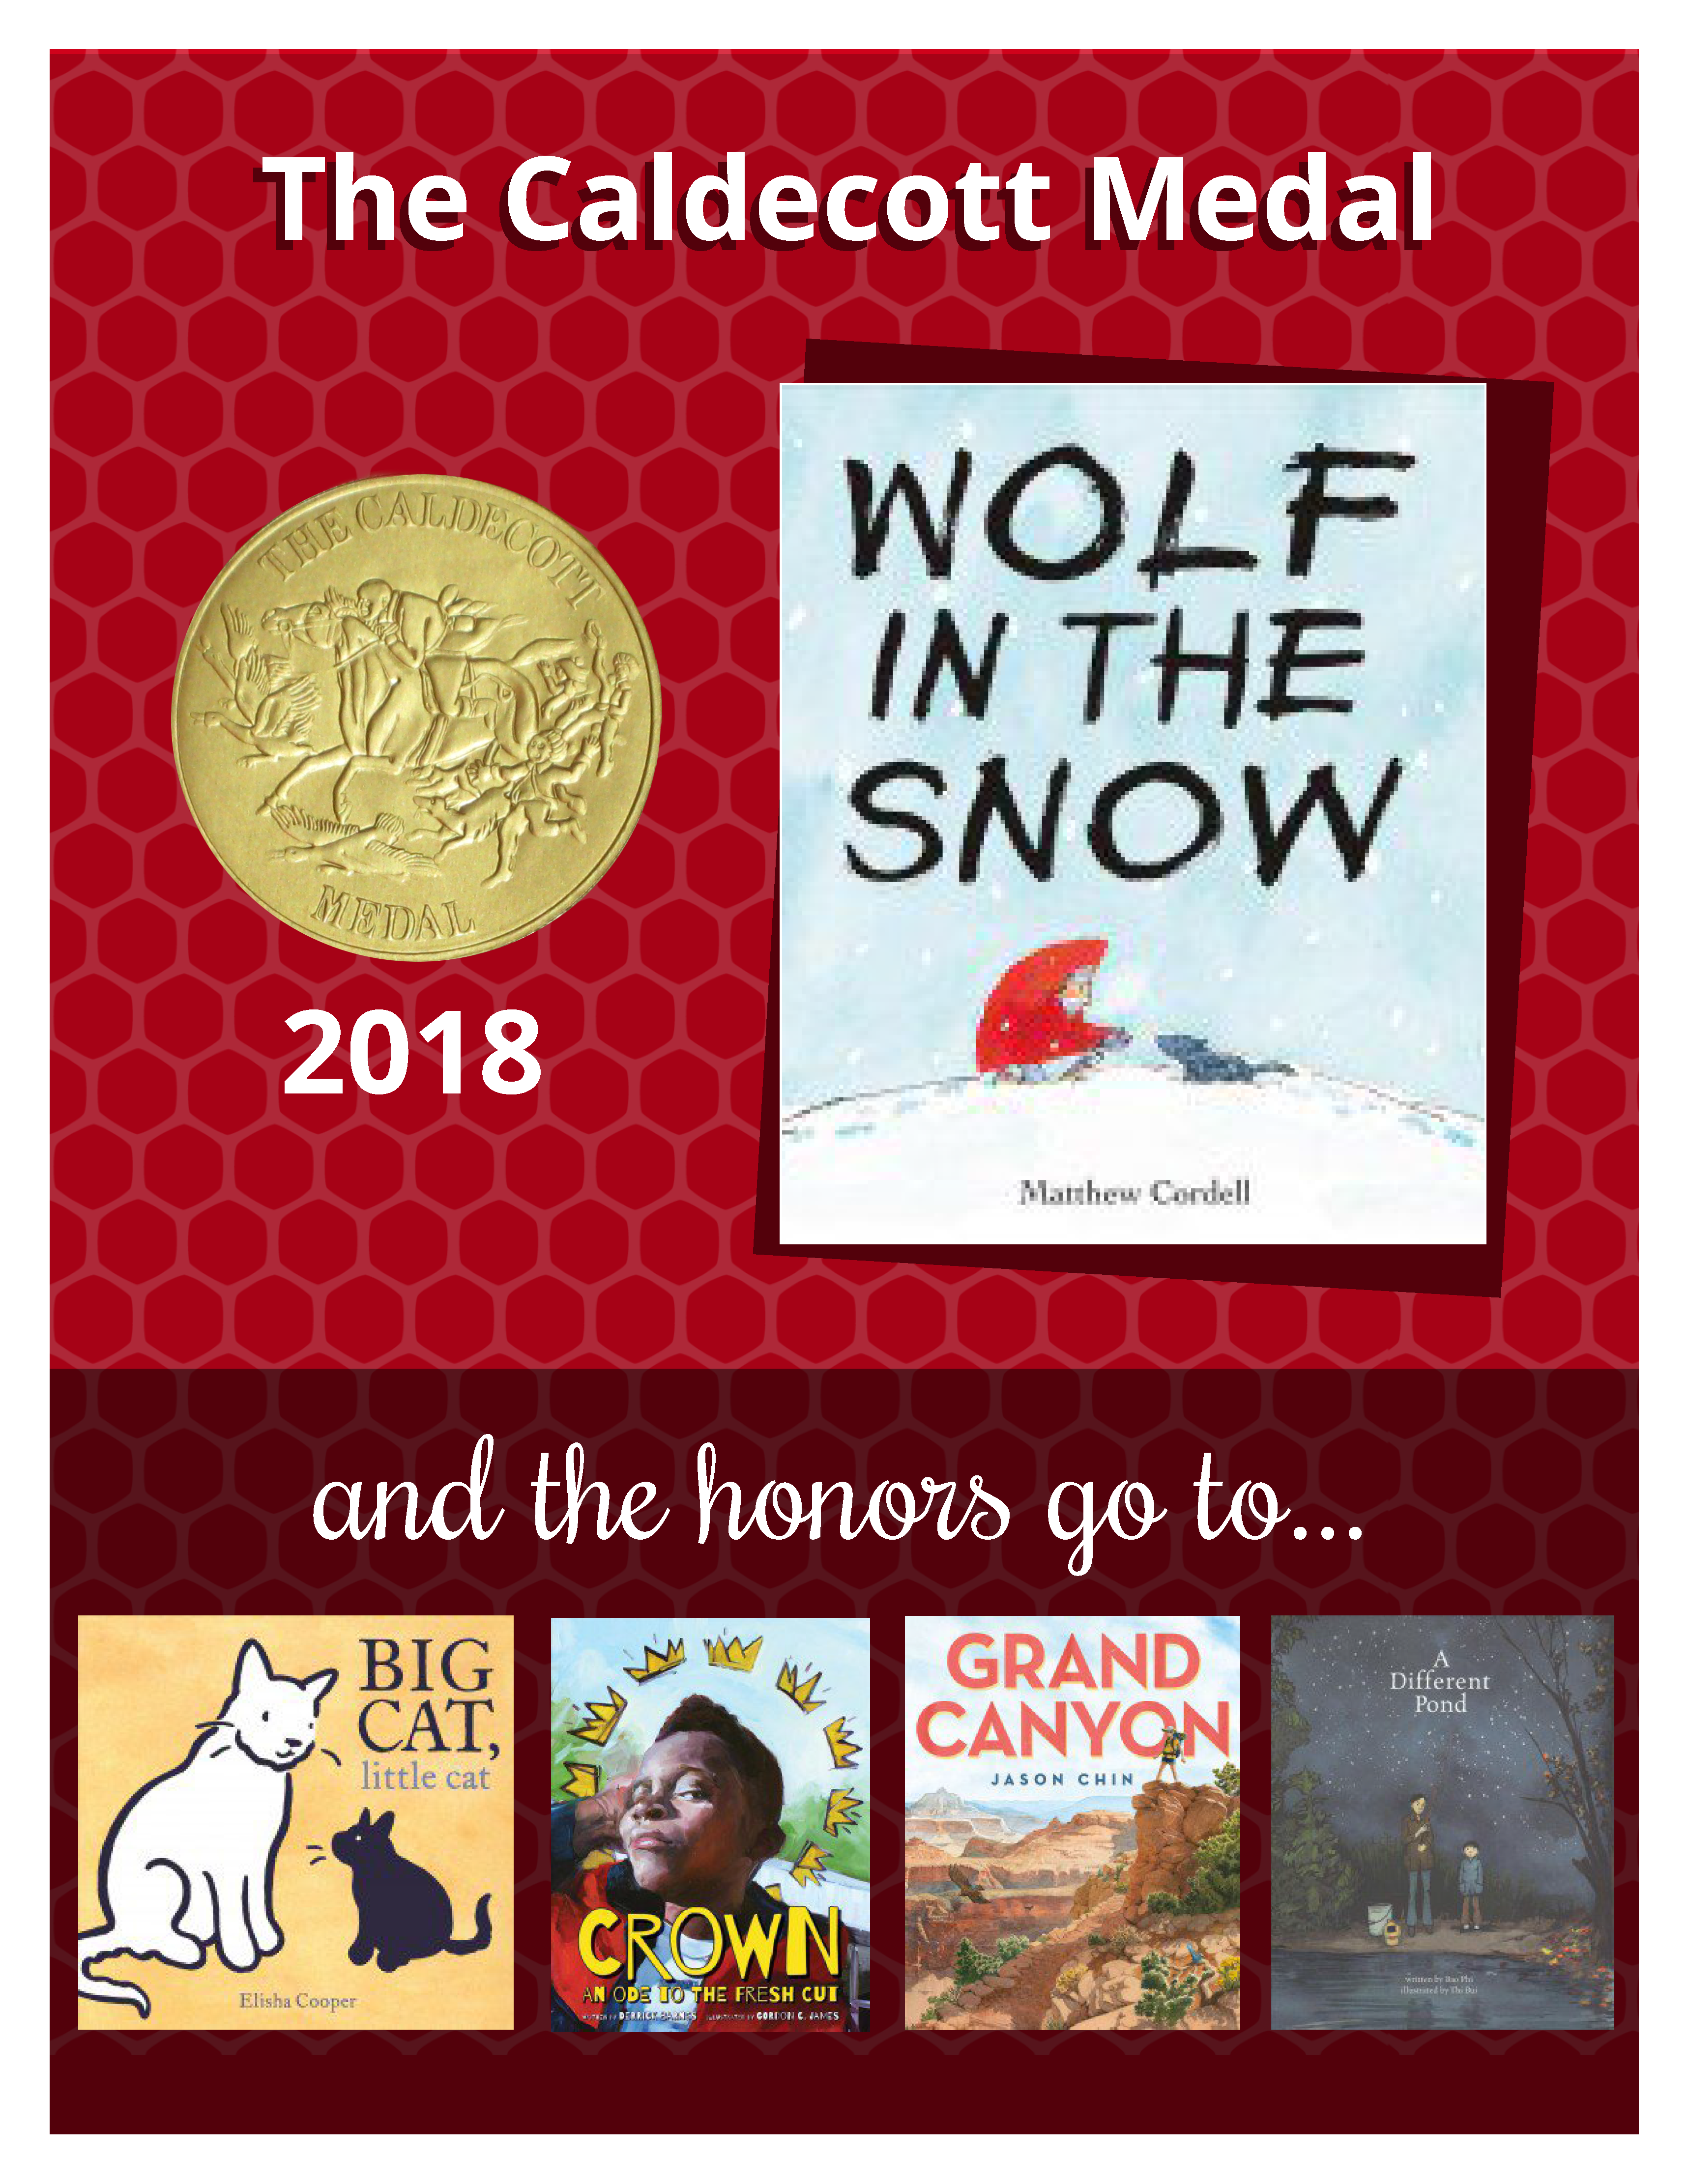 book covers of Caldecott Medal winners